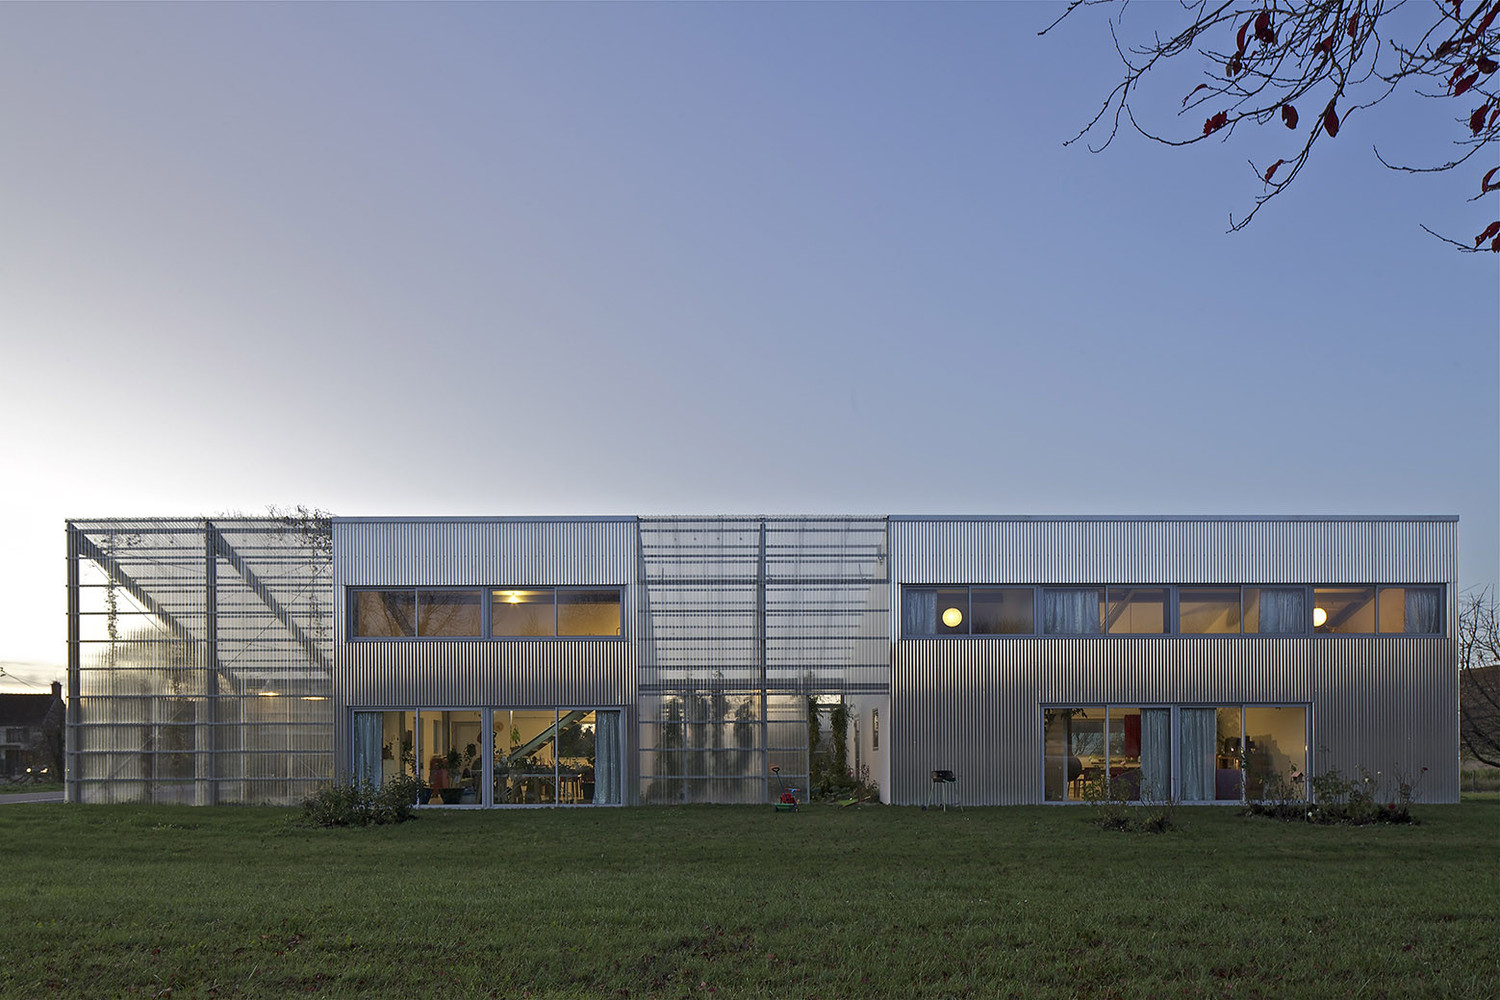 How to implement passive solar design in your architecture projects